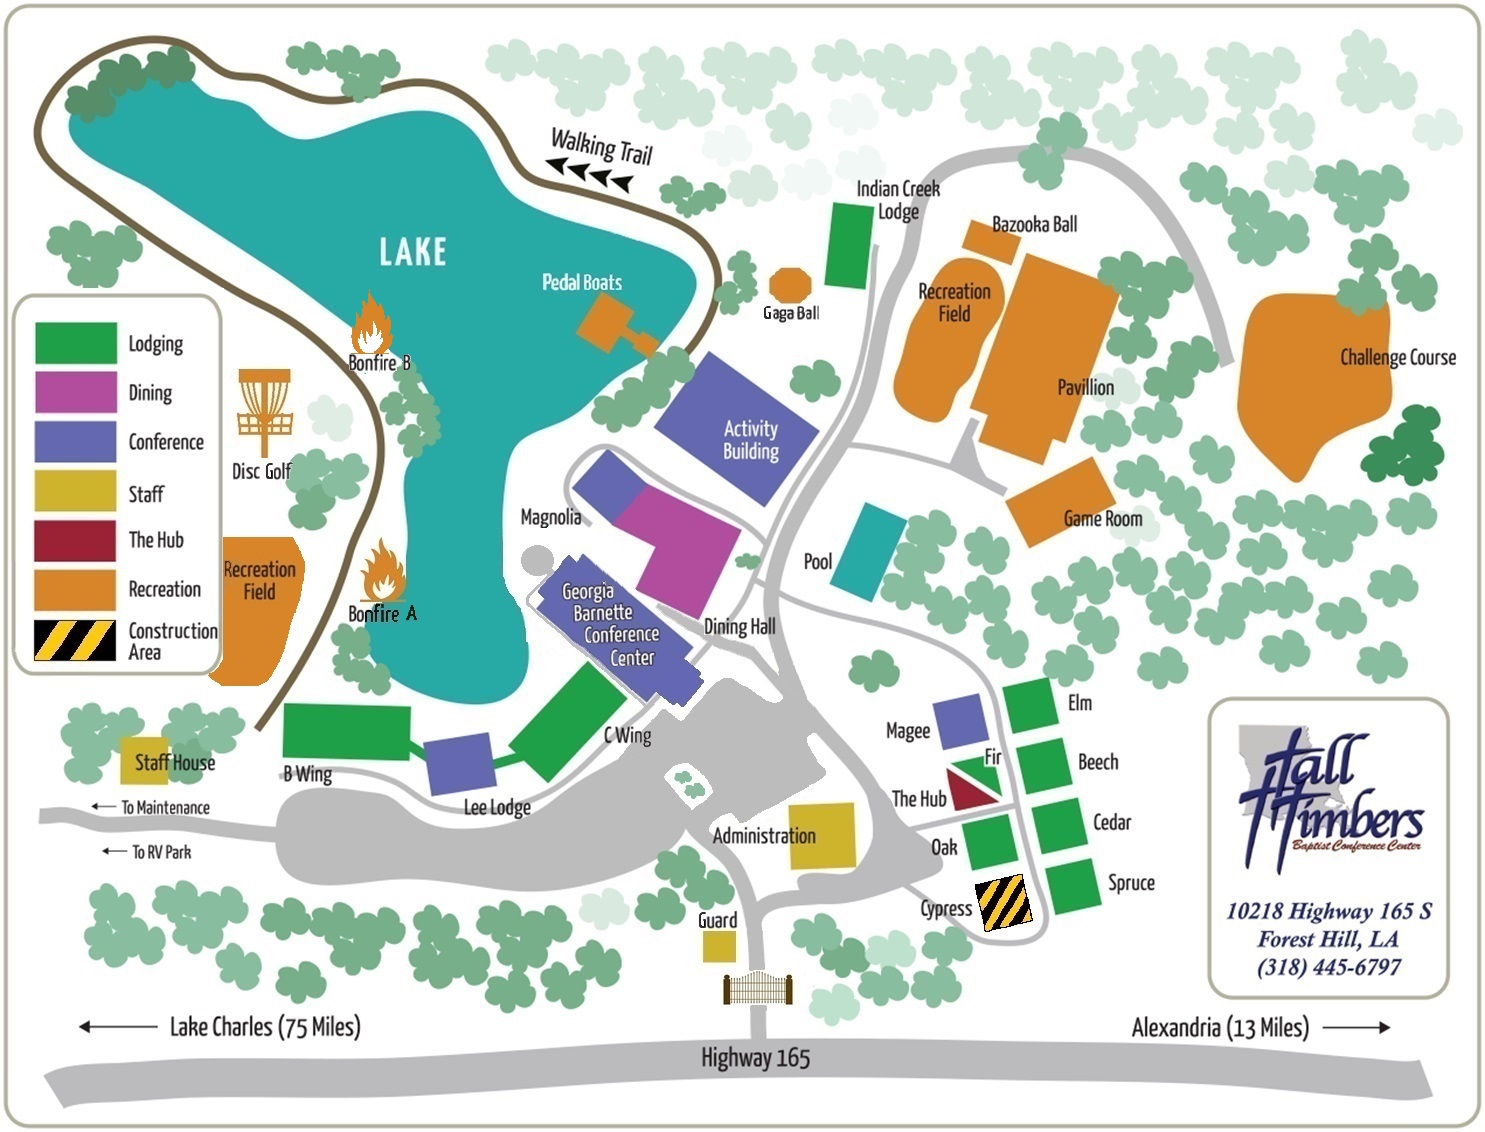 bcc campus map bcc bcctpc bccls bccp bcc » Best world and countries ...